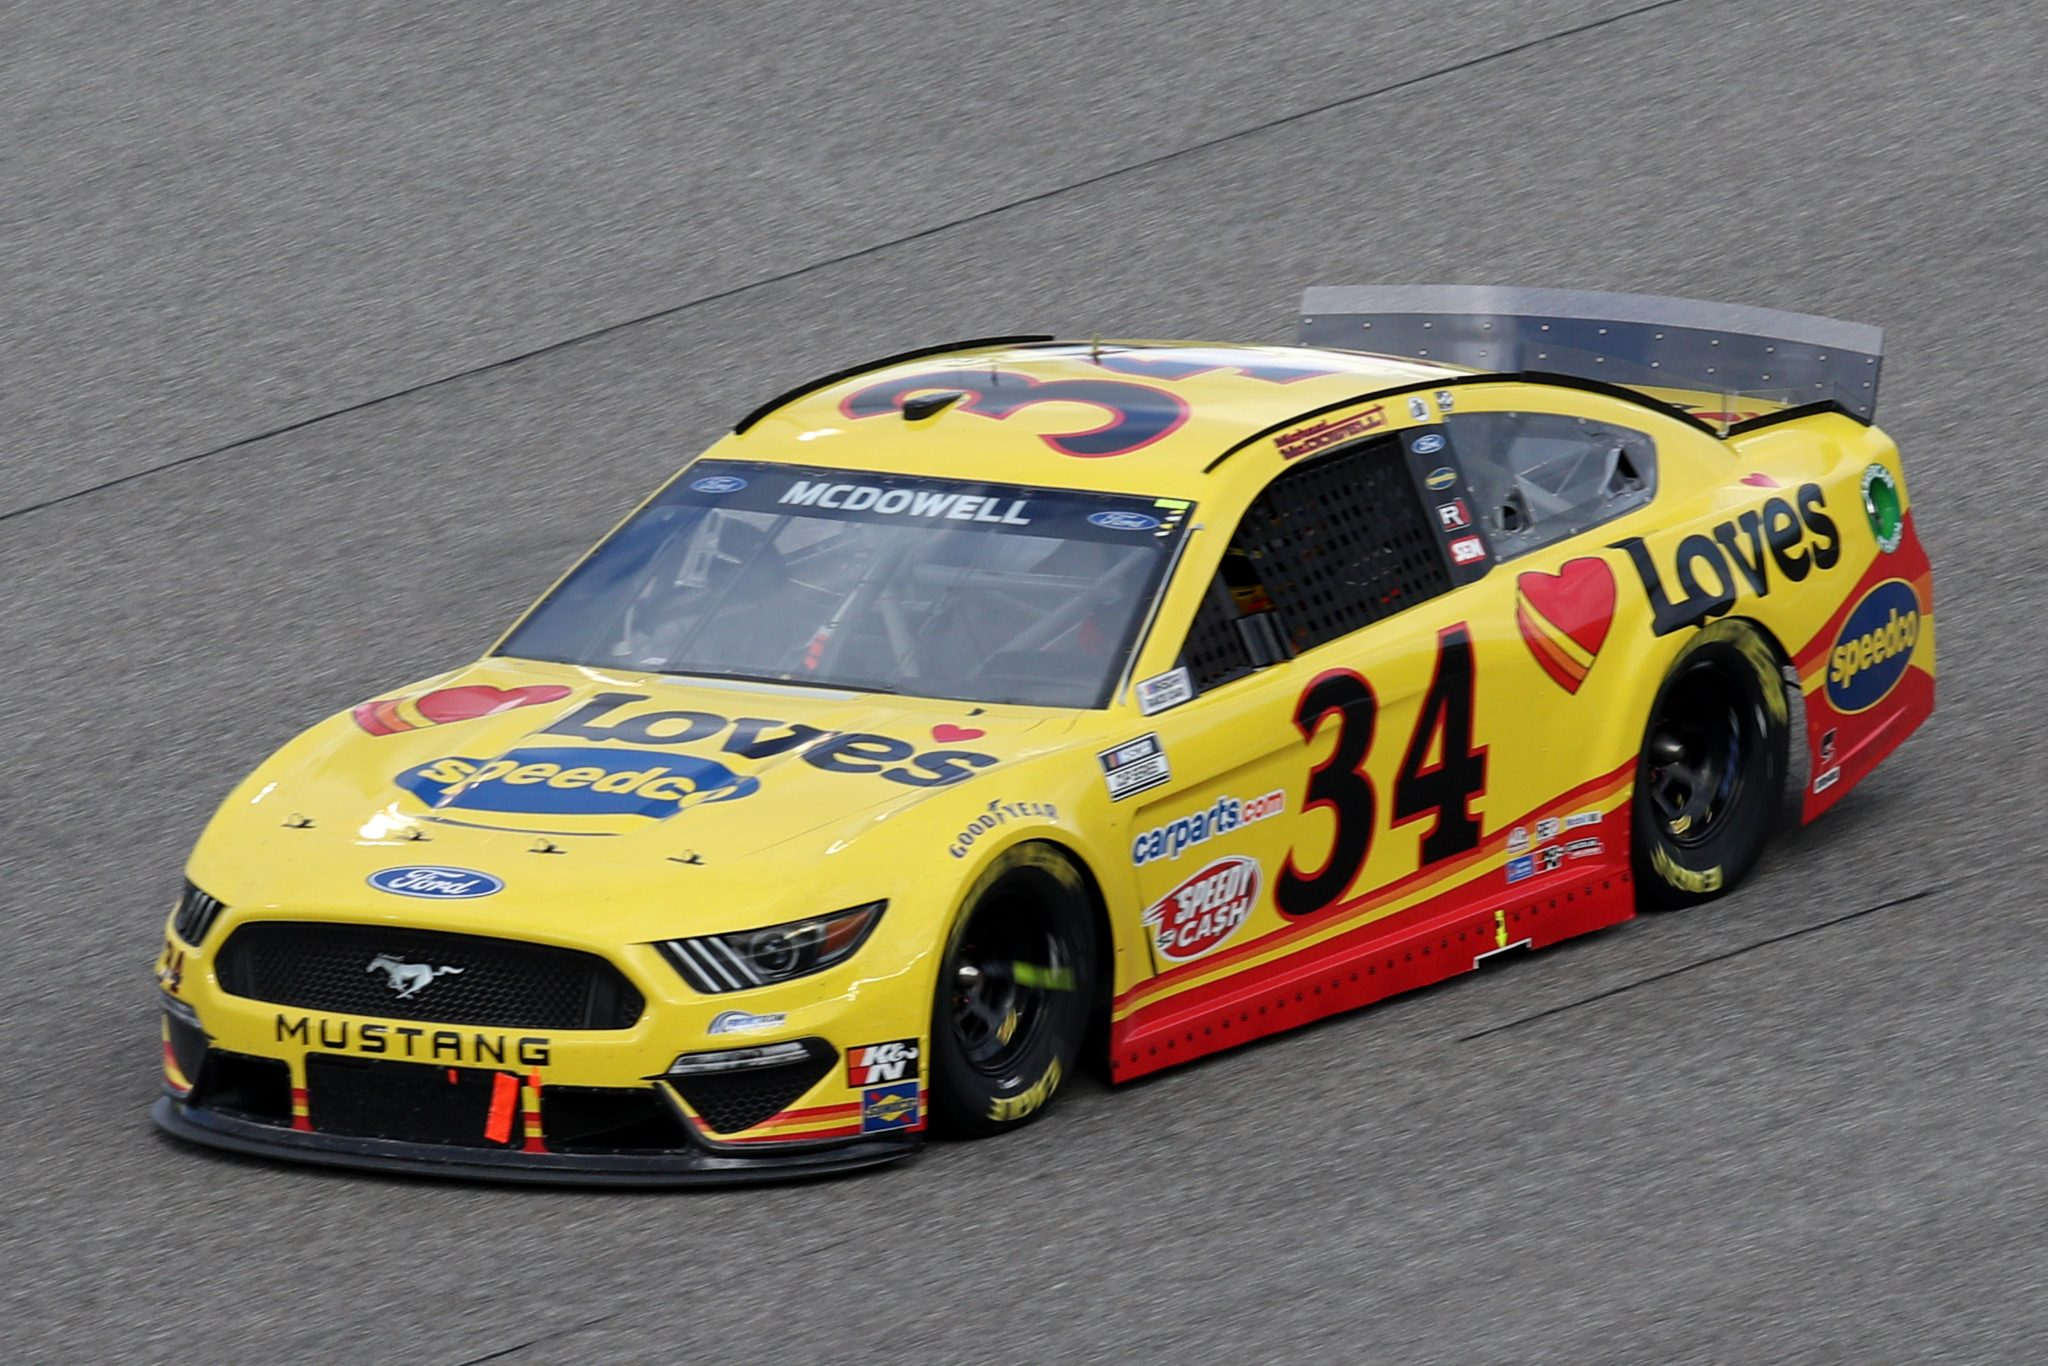 HOMESTEAD, FLORIDA - FEBRUARY 28: Michael McDowell, driver of the #34 Love's Travel Stops Ford, drives during the NASCAR Cup Series Dixie Vodka 400 at Homestead-Miami Speedway on February 28, 2021 in Homestead, Florida. (Photo by Sean Gardner/Getty Images) | Getty Images